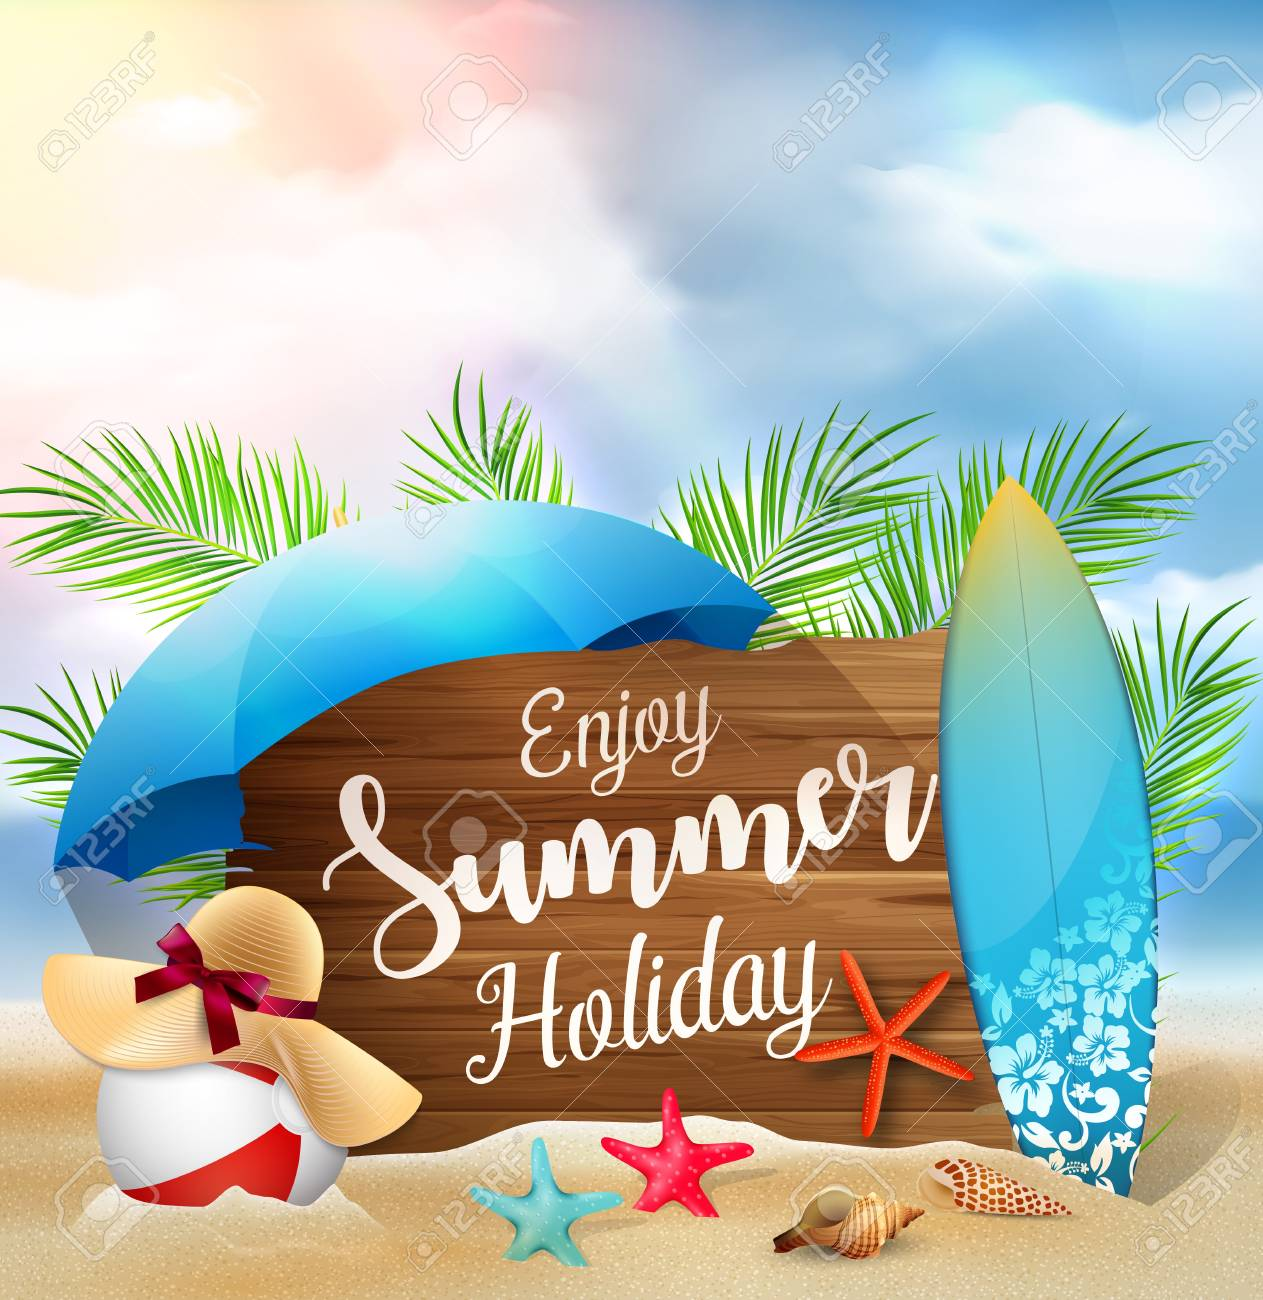 Illustration Of Enjoy Summer Holidays Banner Design With A Wooden